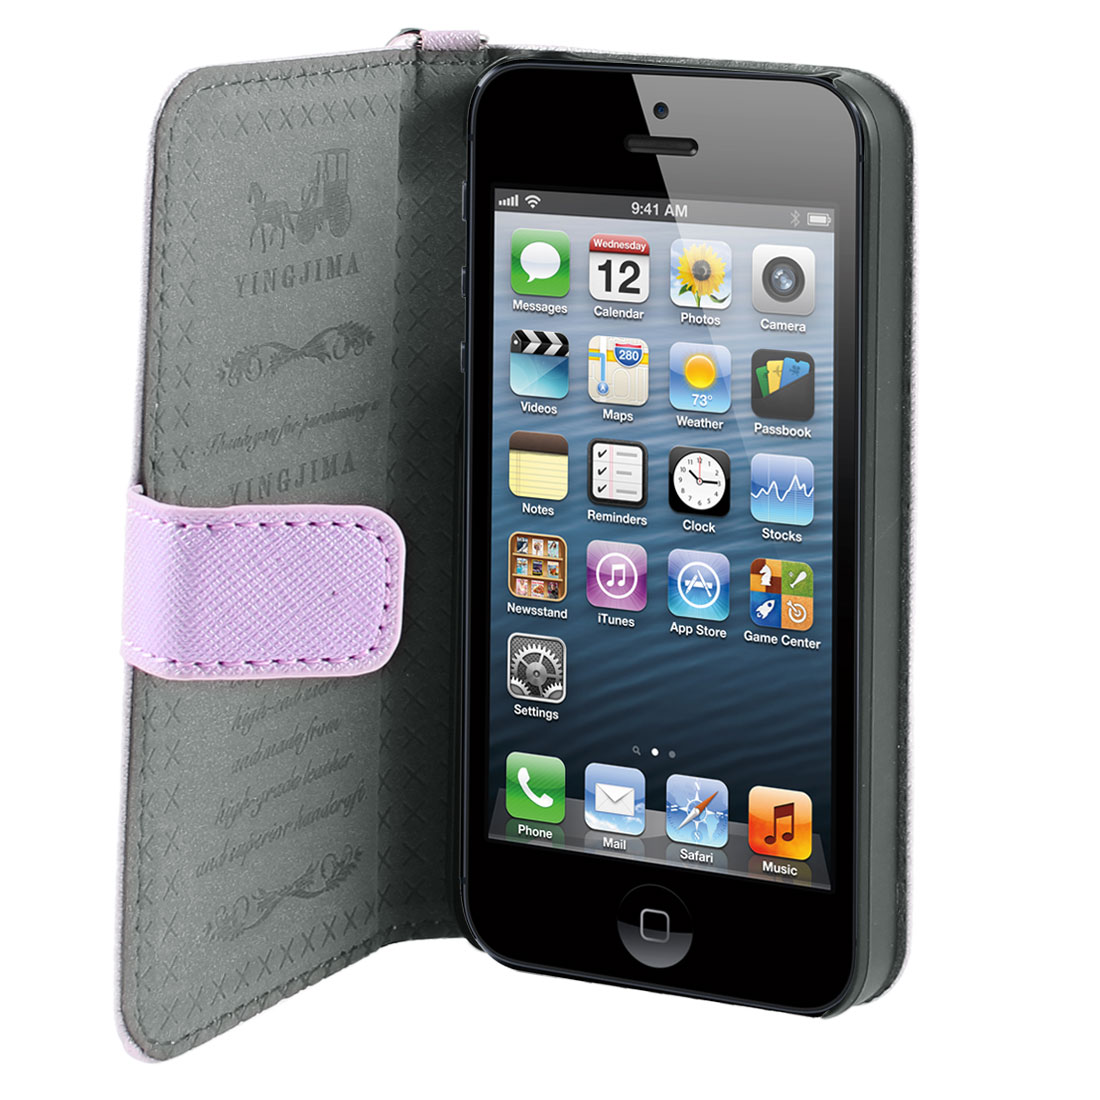 Pink Faux Leather Magnetic Flip Case Cover Pouch Holder for iPhone 5 5G 5th